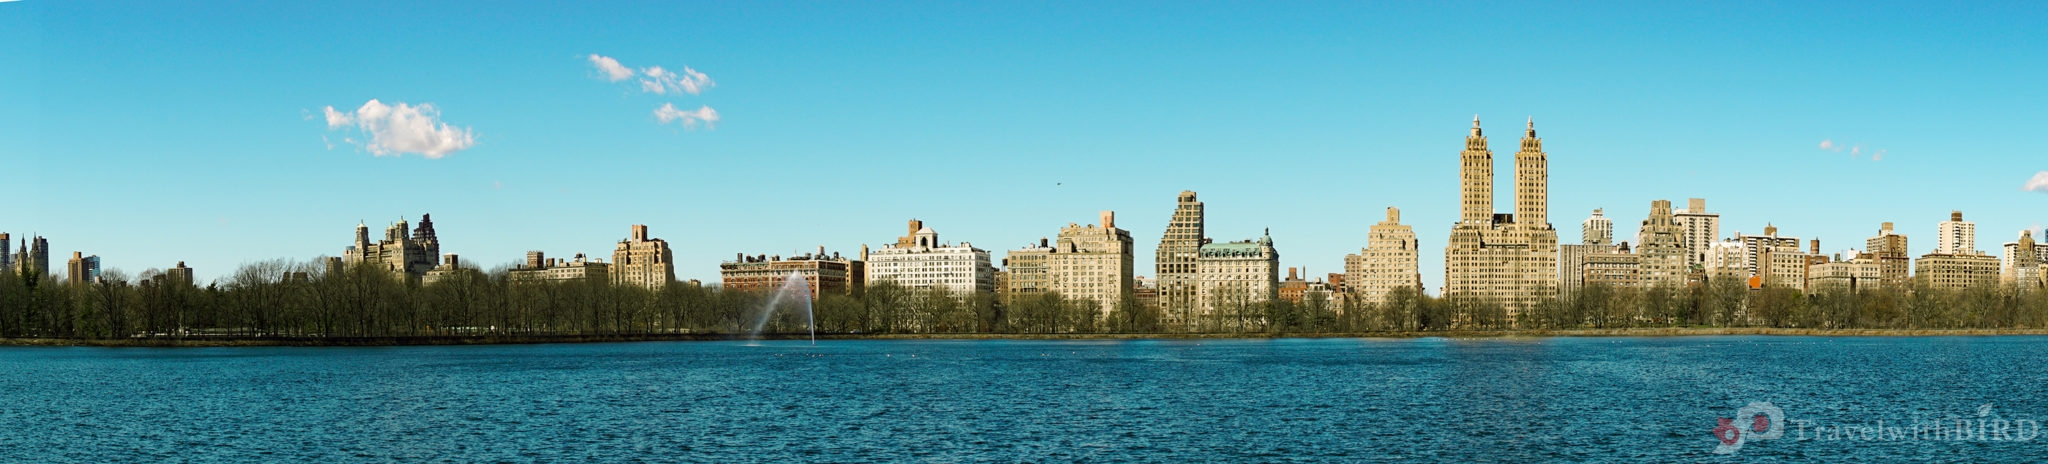 Panorama view over the big lake in Central Park